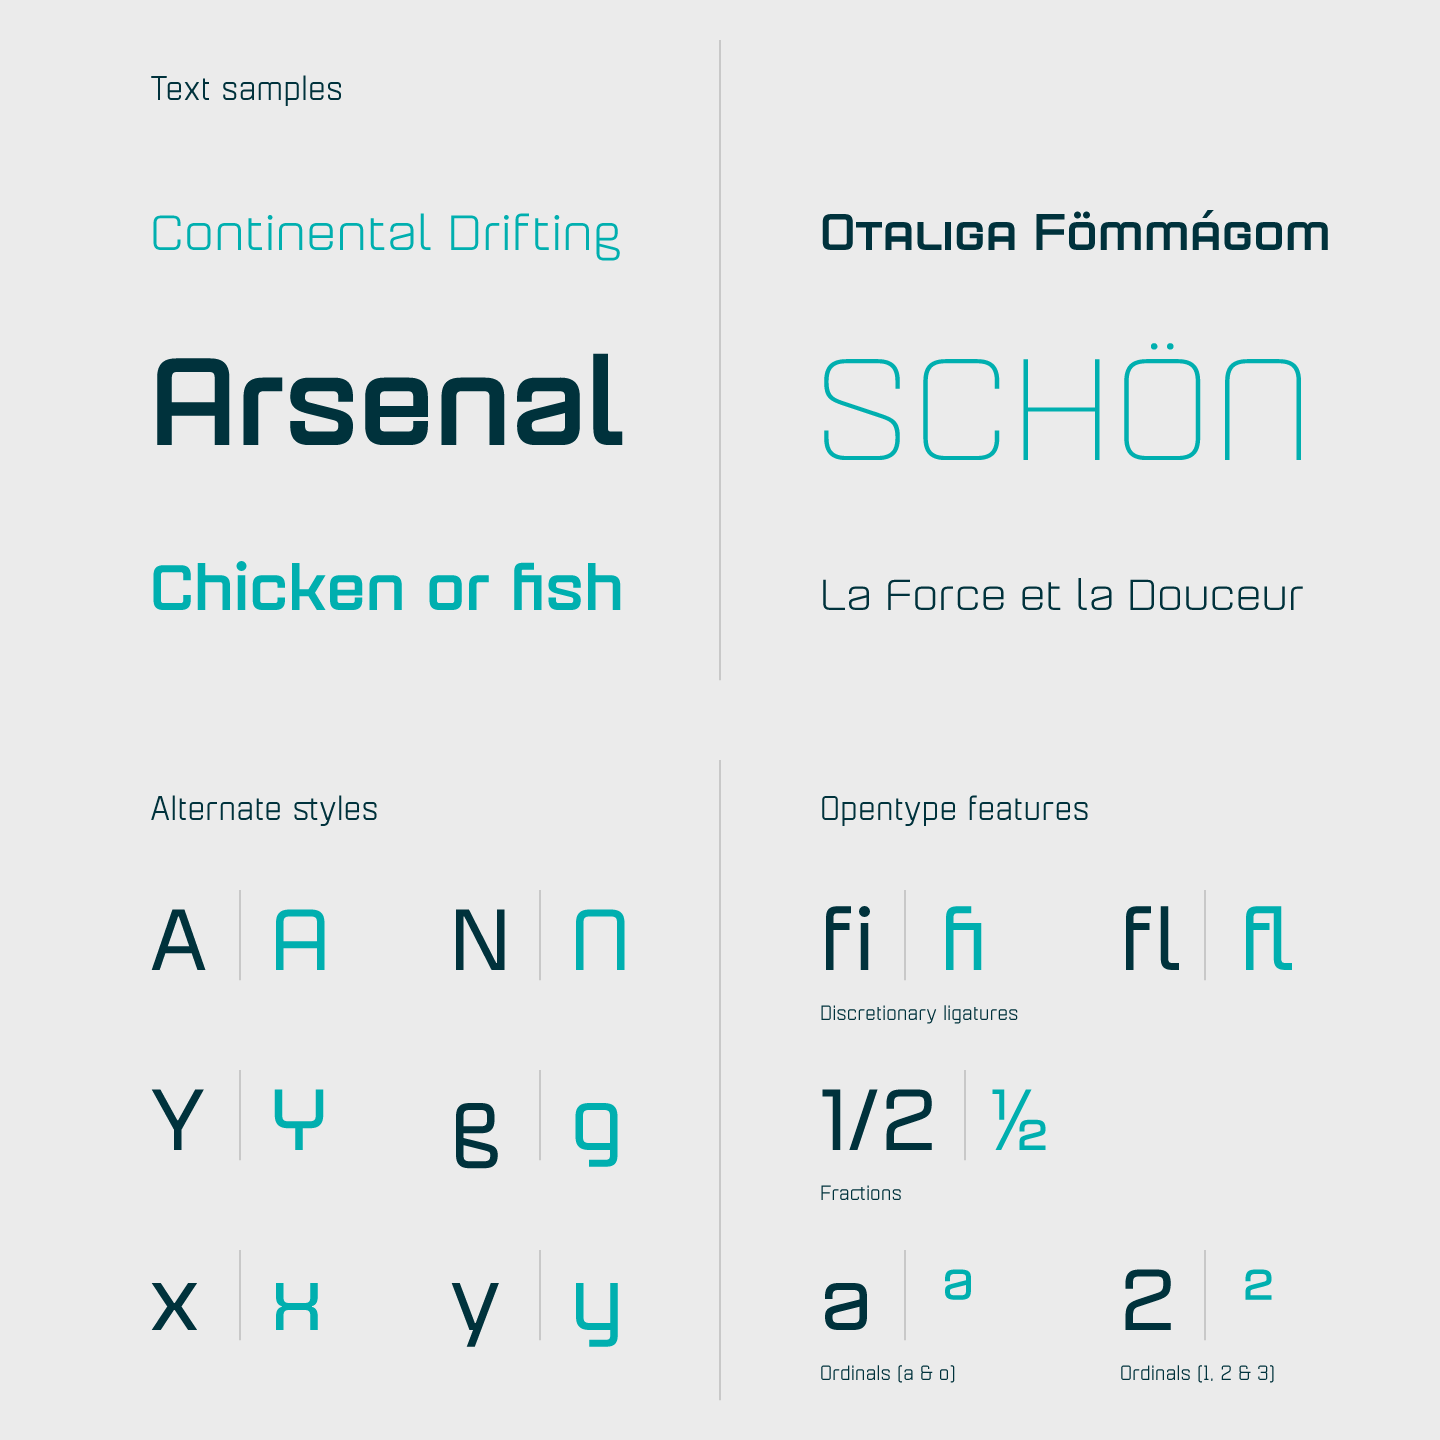 Text samples, alternate styles, and OpenType features.